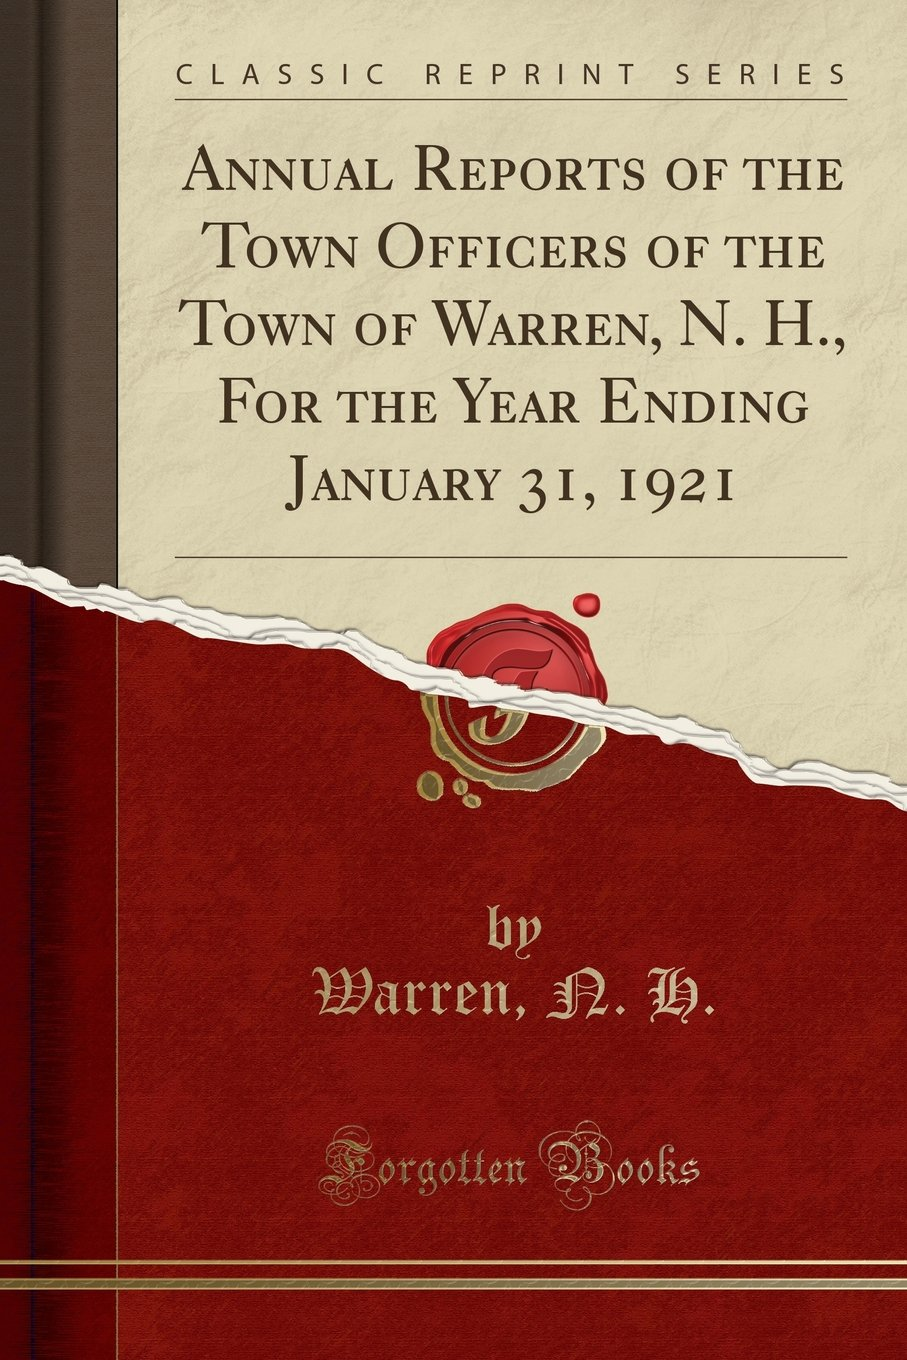 Download Annual Reports of the Town Officers of the Town of Warren, N. H., For the Year Ending January 31, 1921 (Classic Reprint) PDF